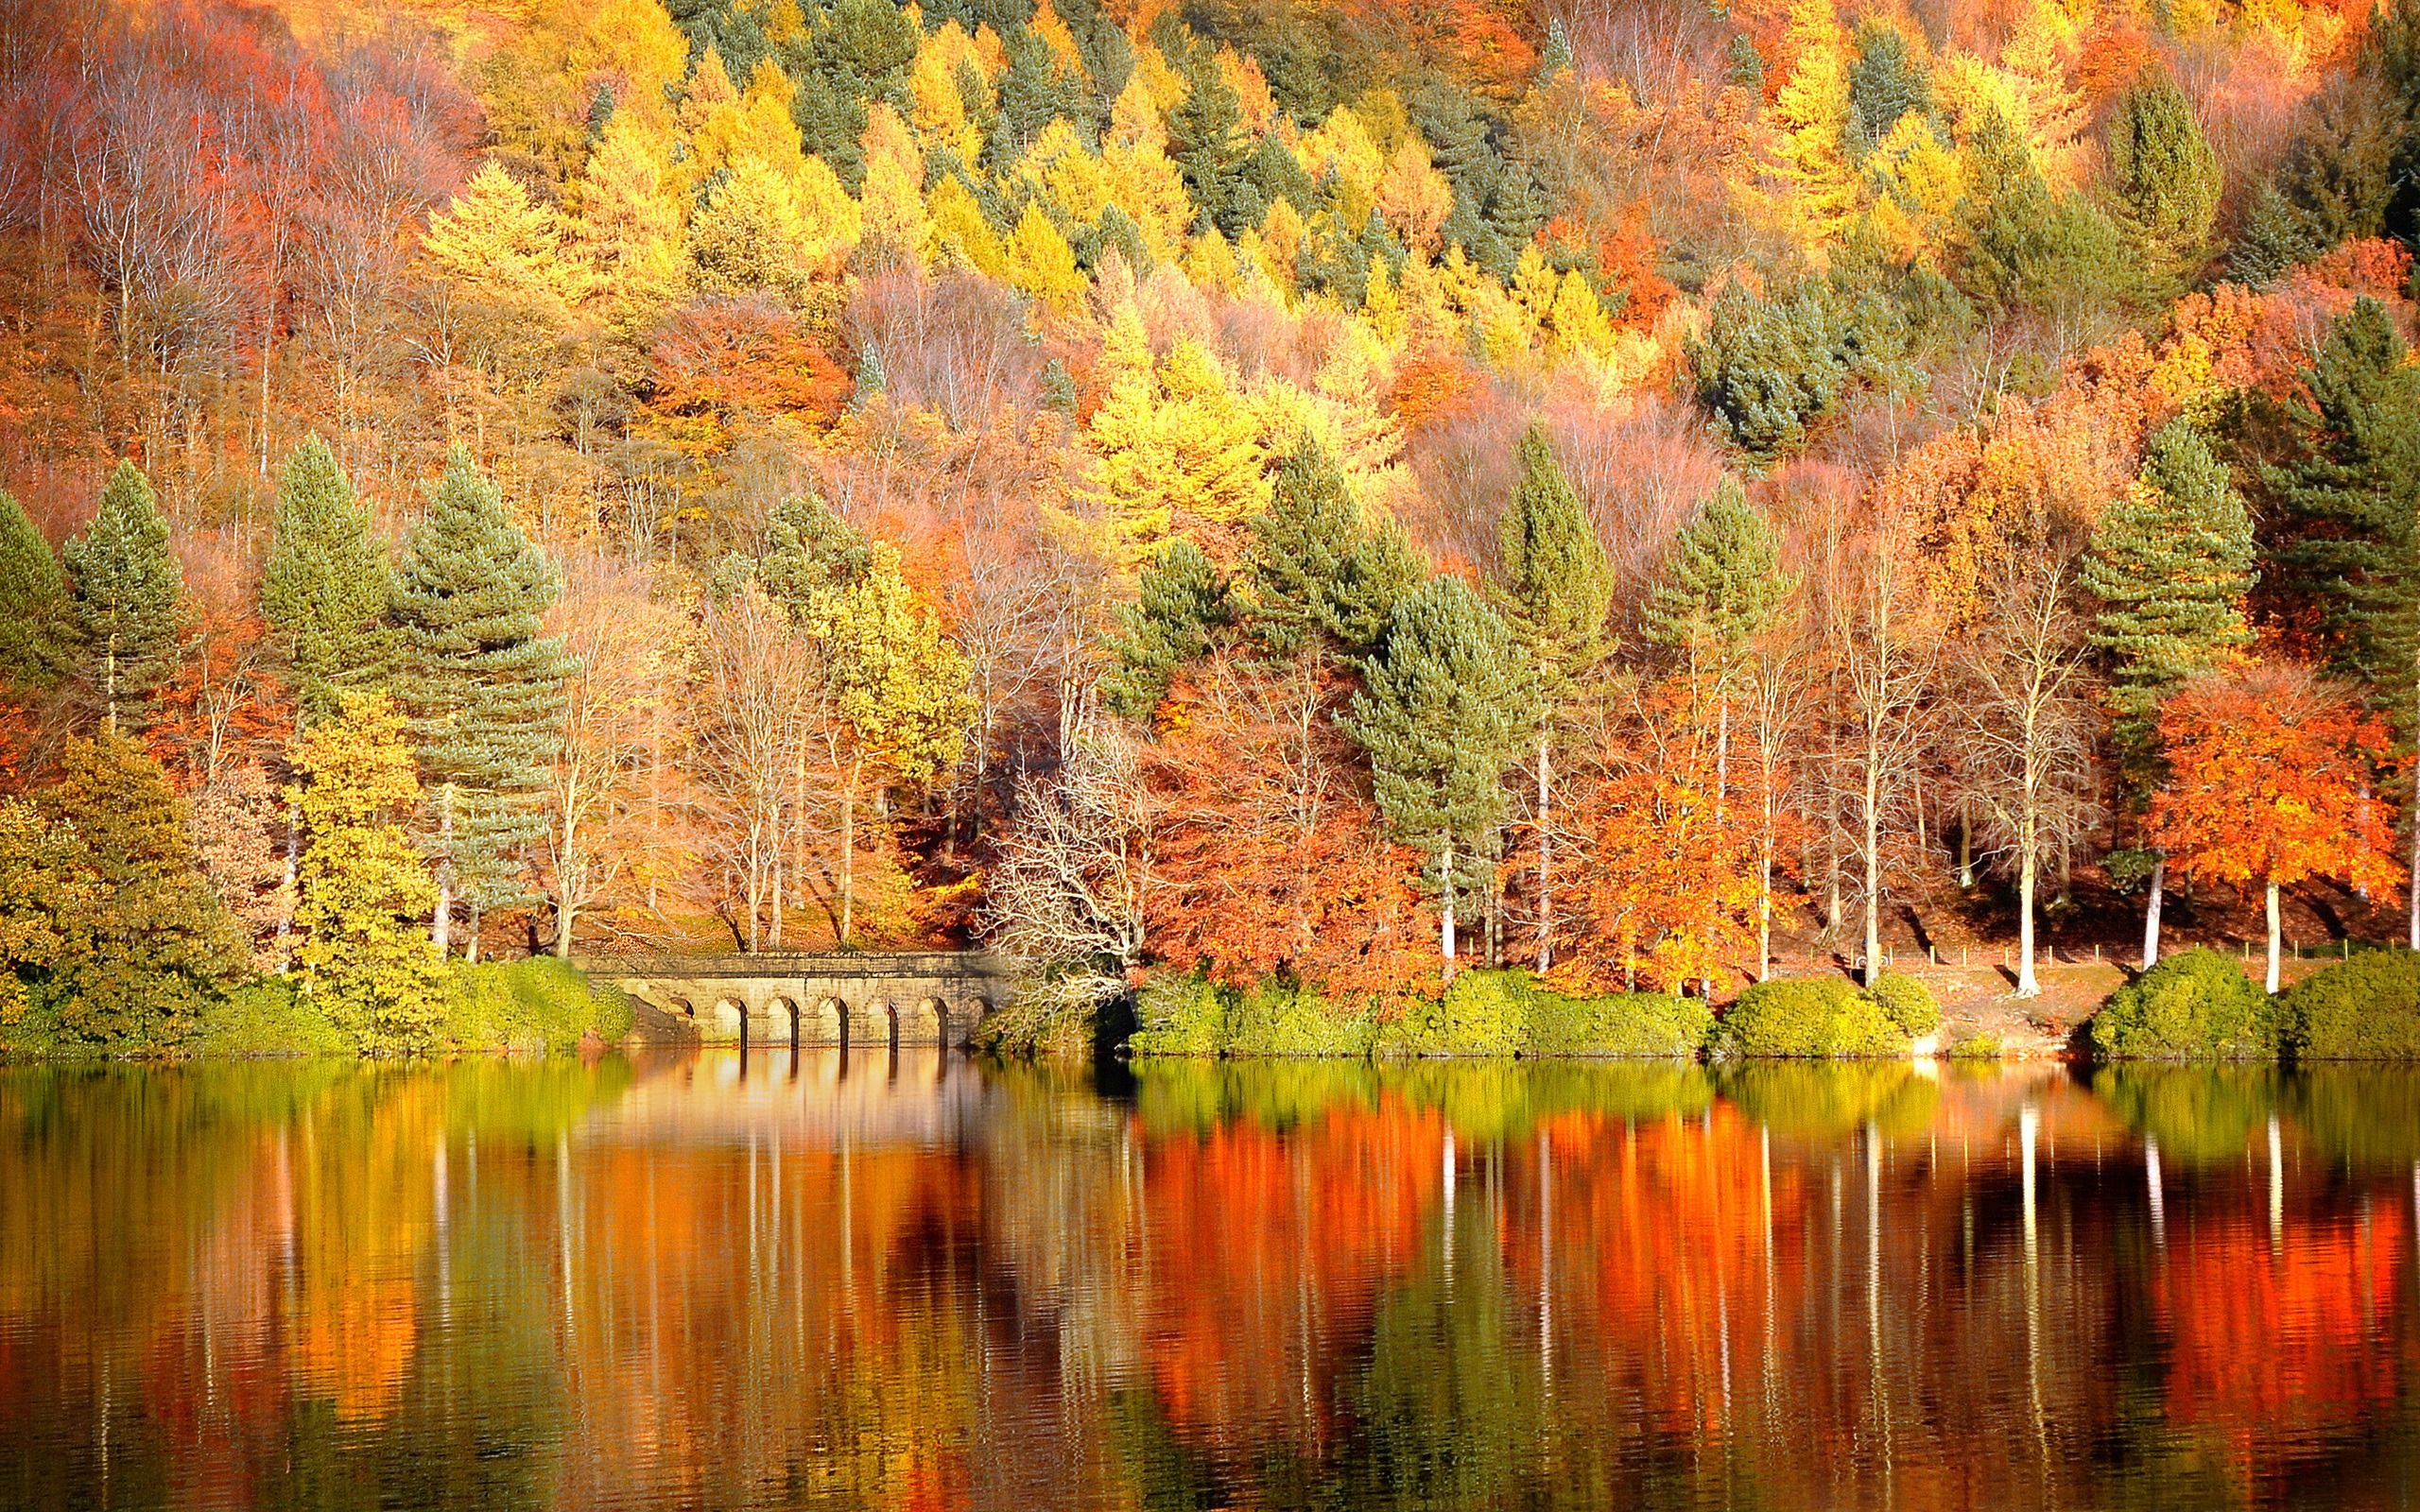 Reminds Me Of Julian Price Park Family Trips With My Boys Desktop Wallpaper Fall Autumn Landscape Scenery Wallpaper